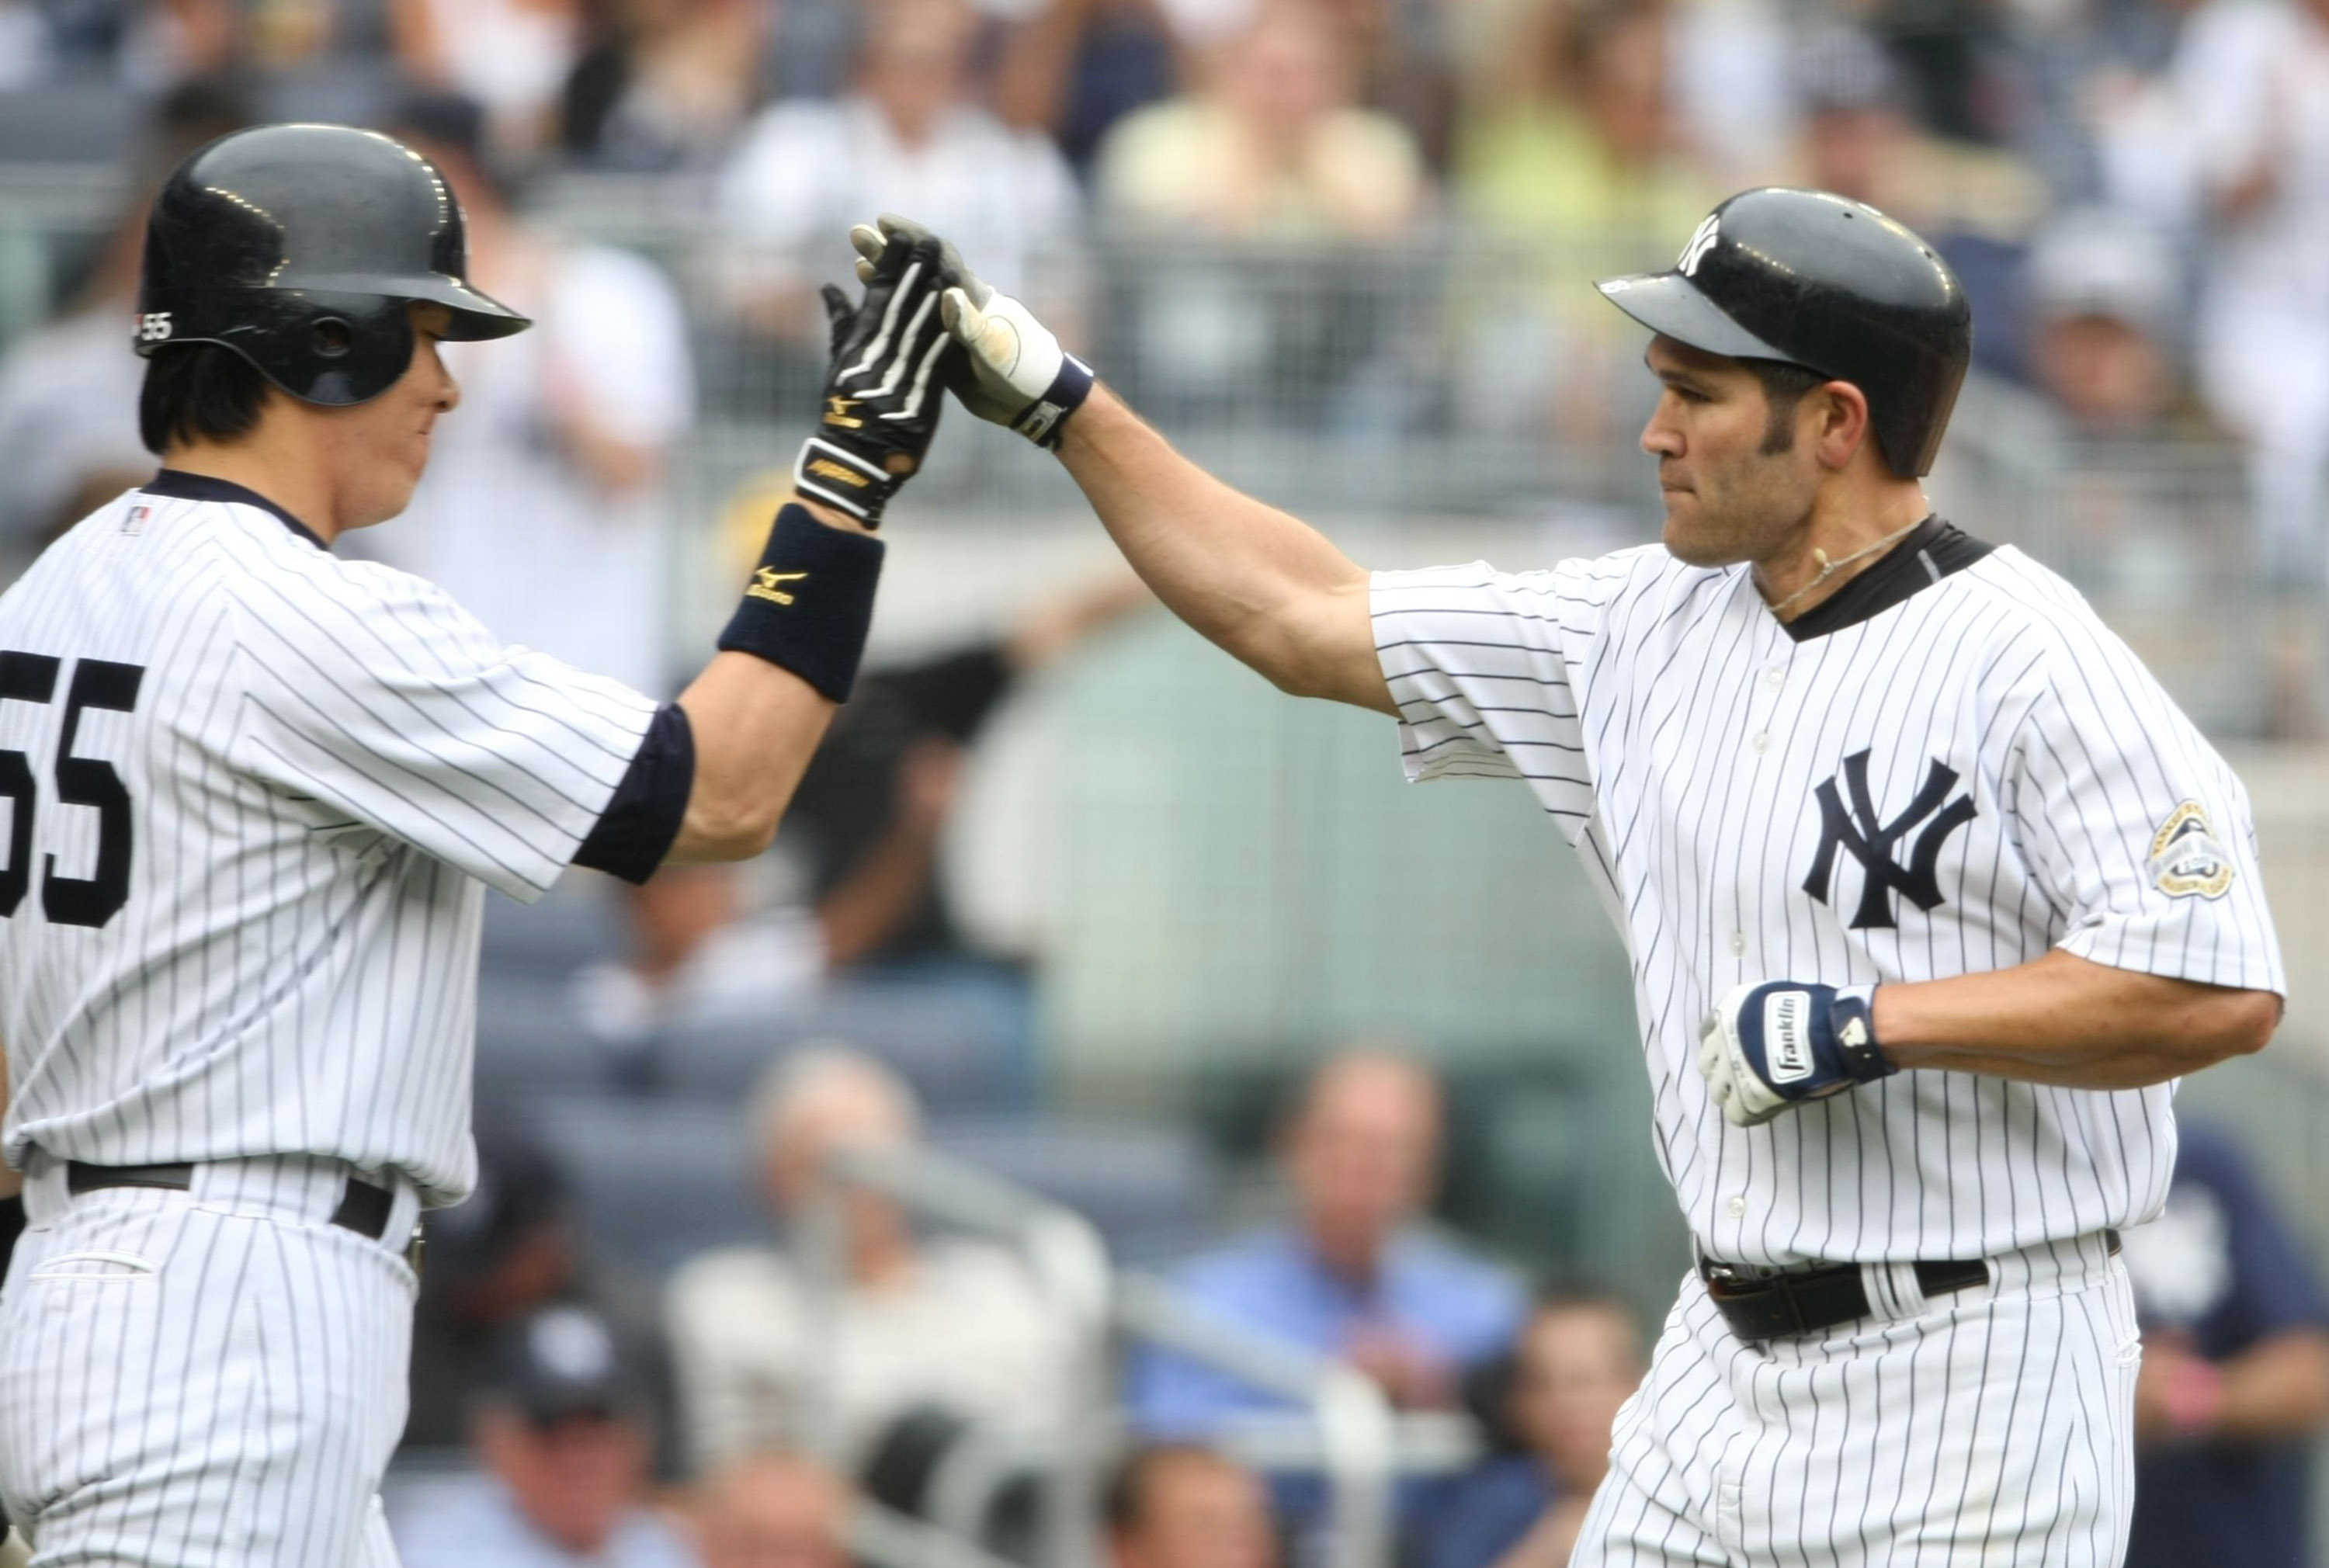 NEW YORK - AUGUST 12:  Johnny Damon #2 (R) of the New York Yankees gets a high five from teammate Hideki Matsui #55 after hitting a homerun in the third inning during the MLB game against the Toronto Blue Jays on August 12, 2009 at Yankee Stadium in the B